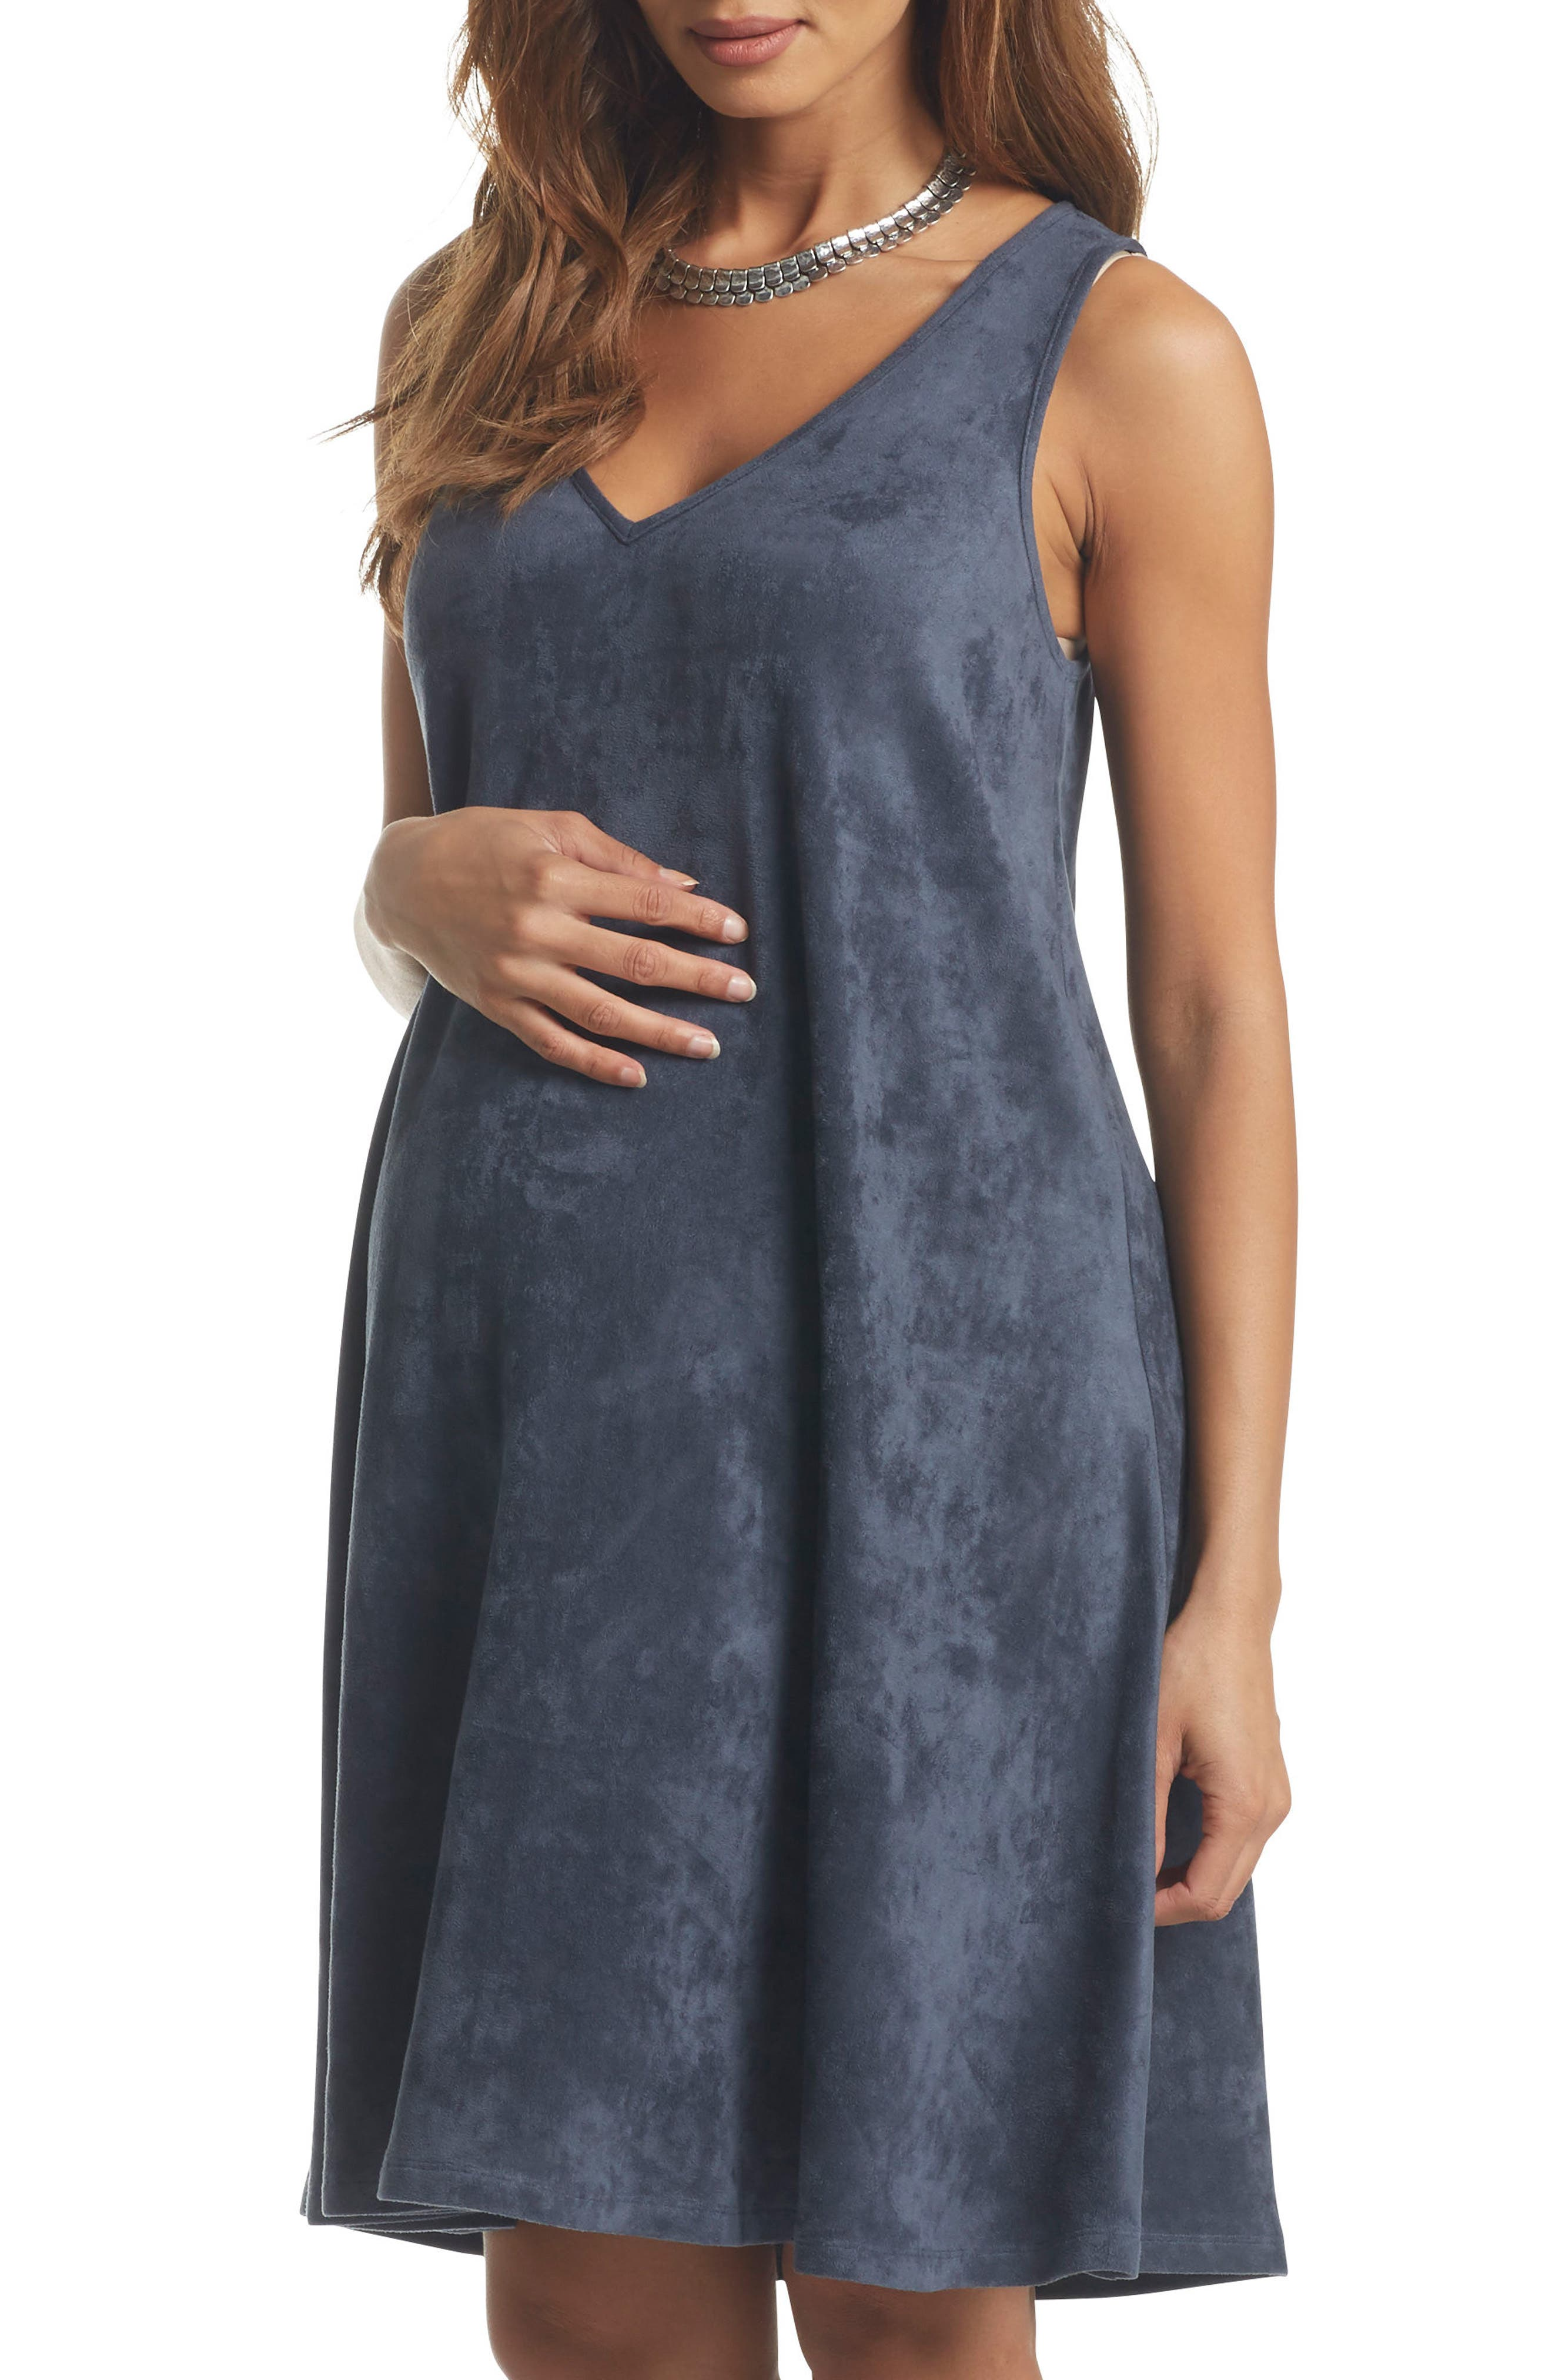 Tart Maternity Zandra Sueded Maternity Dress